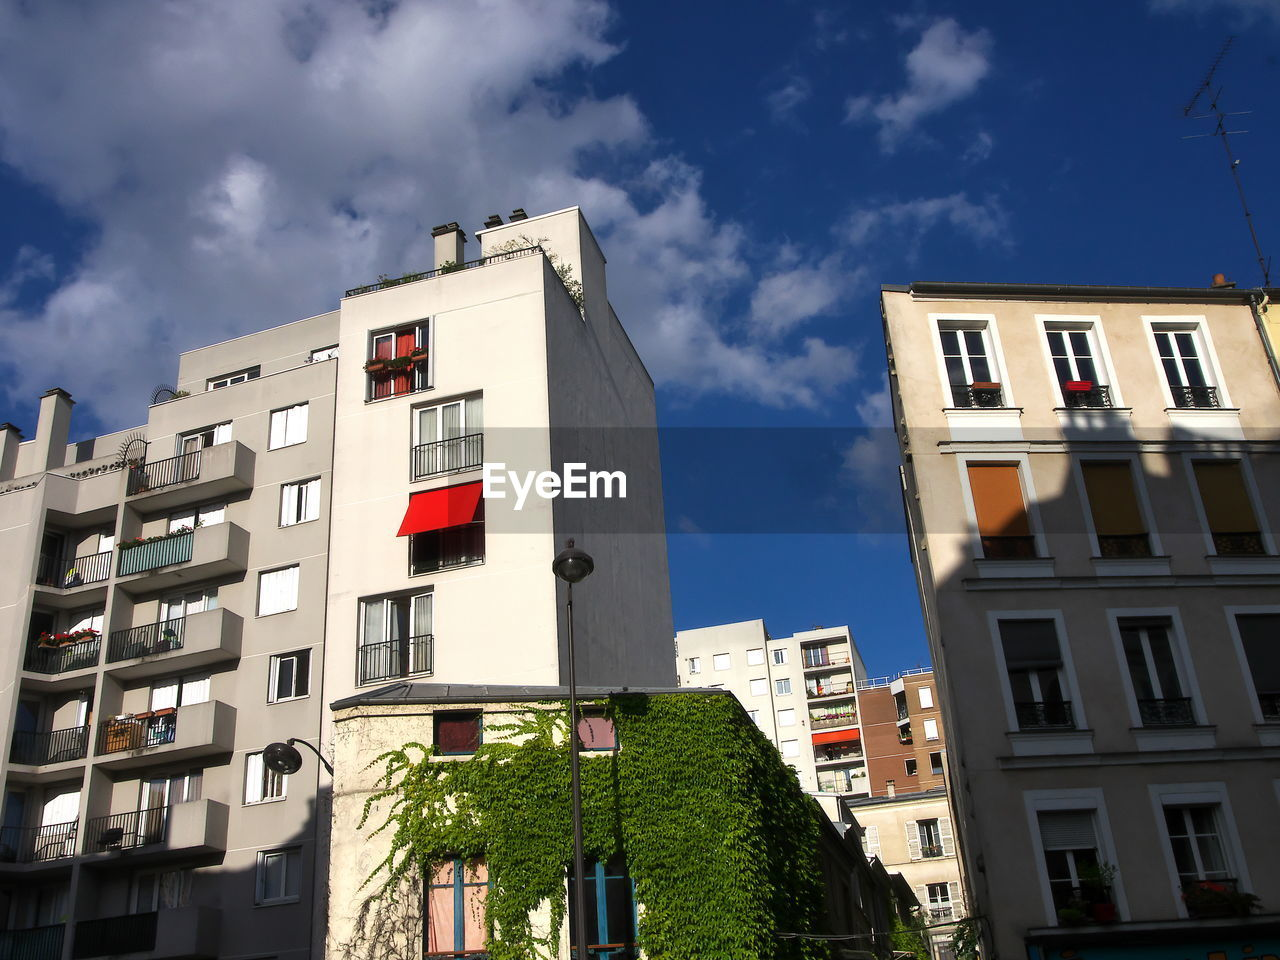 LOW ANGLE VIEW OF APARTMENT BUILDINGS AGAINST SKY